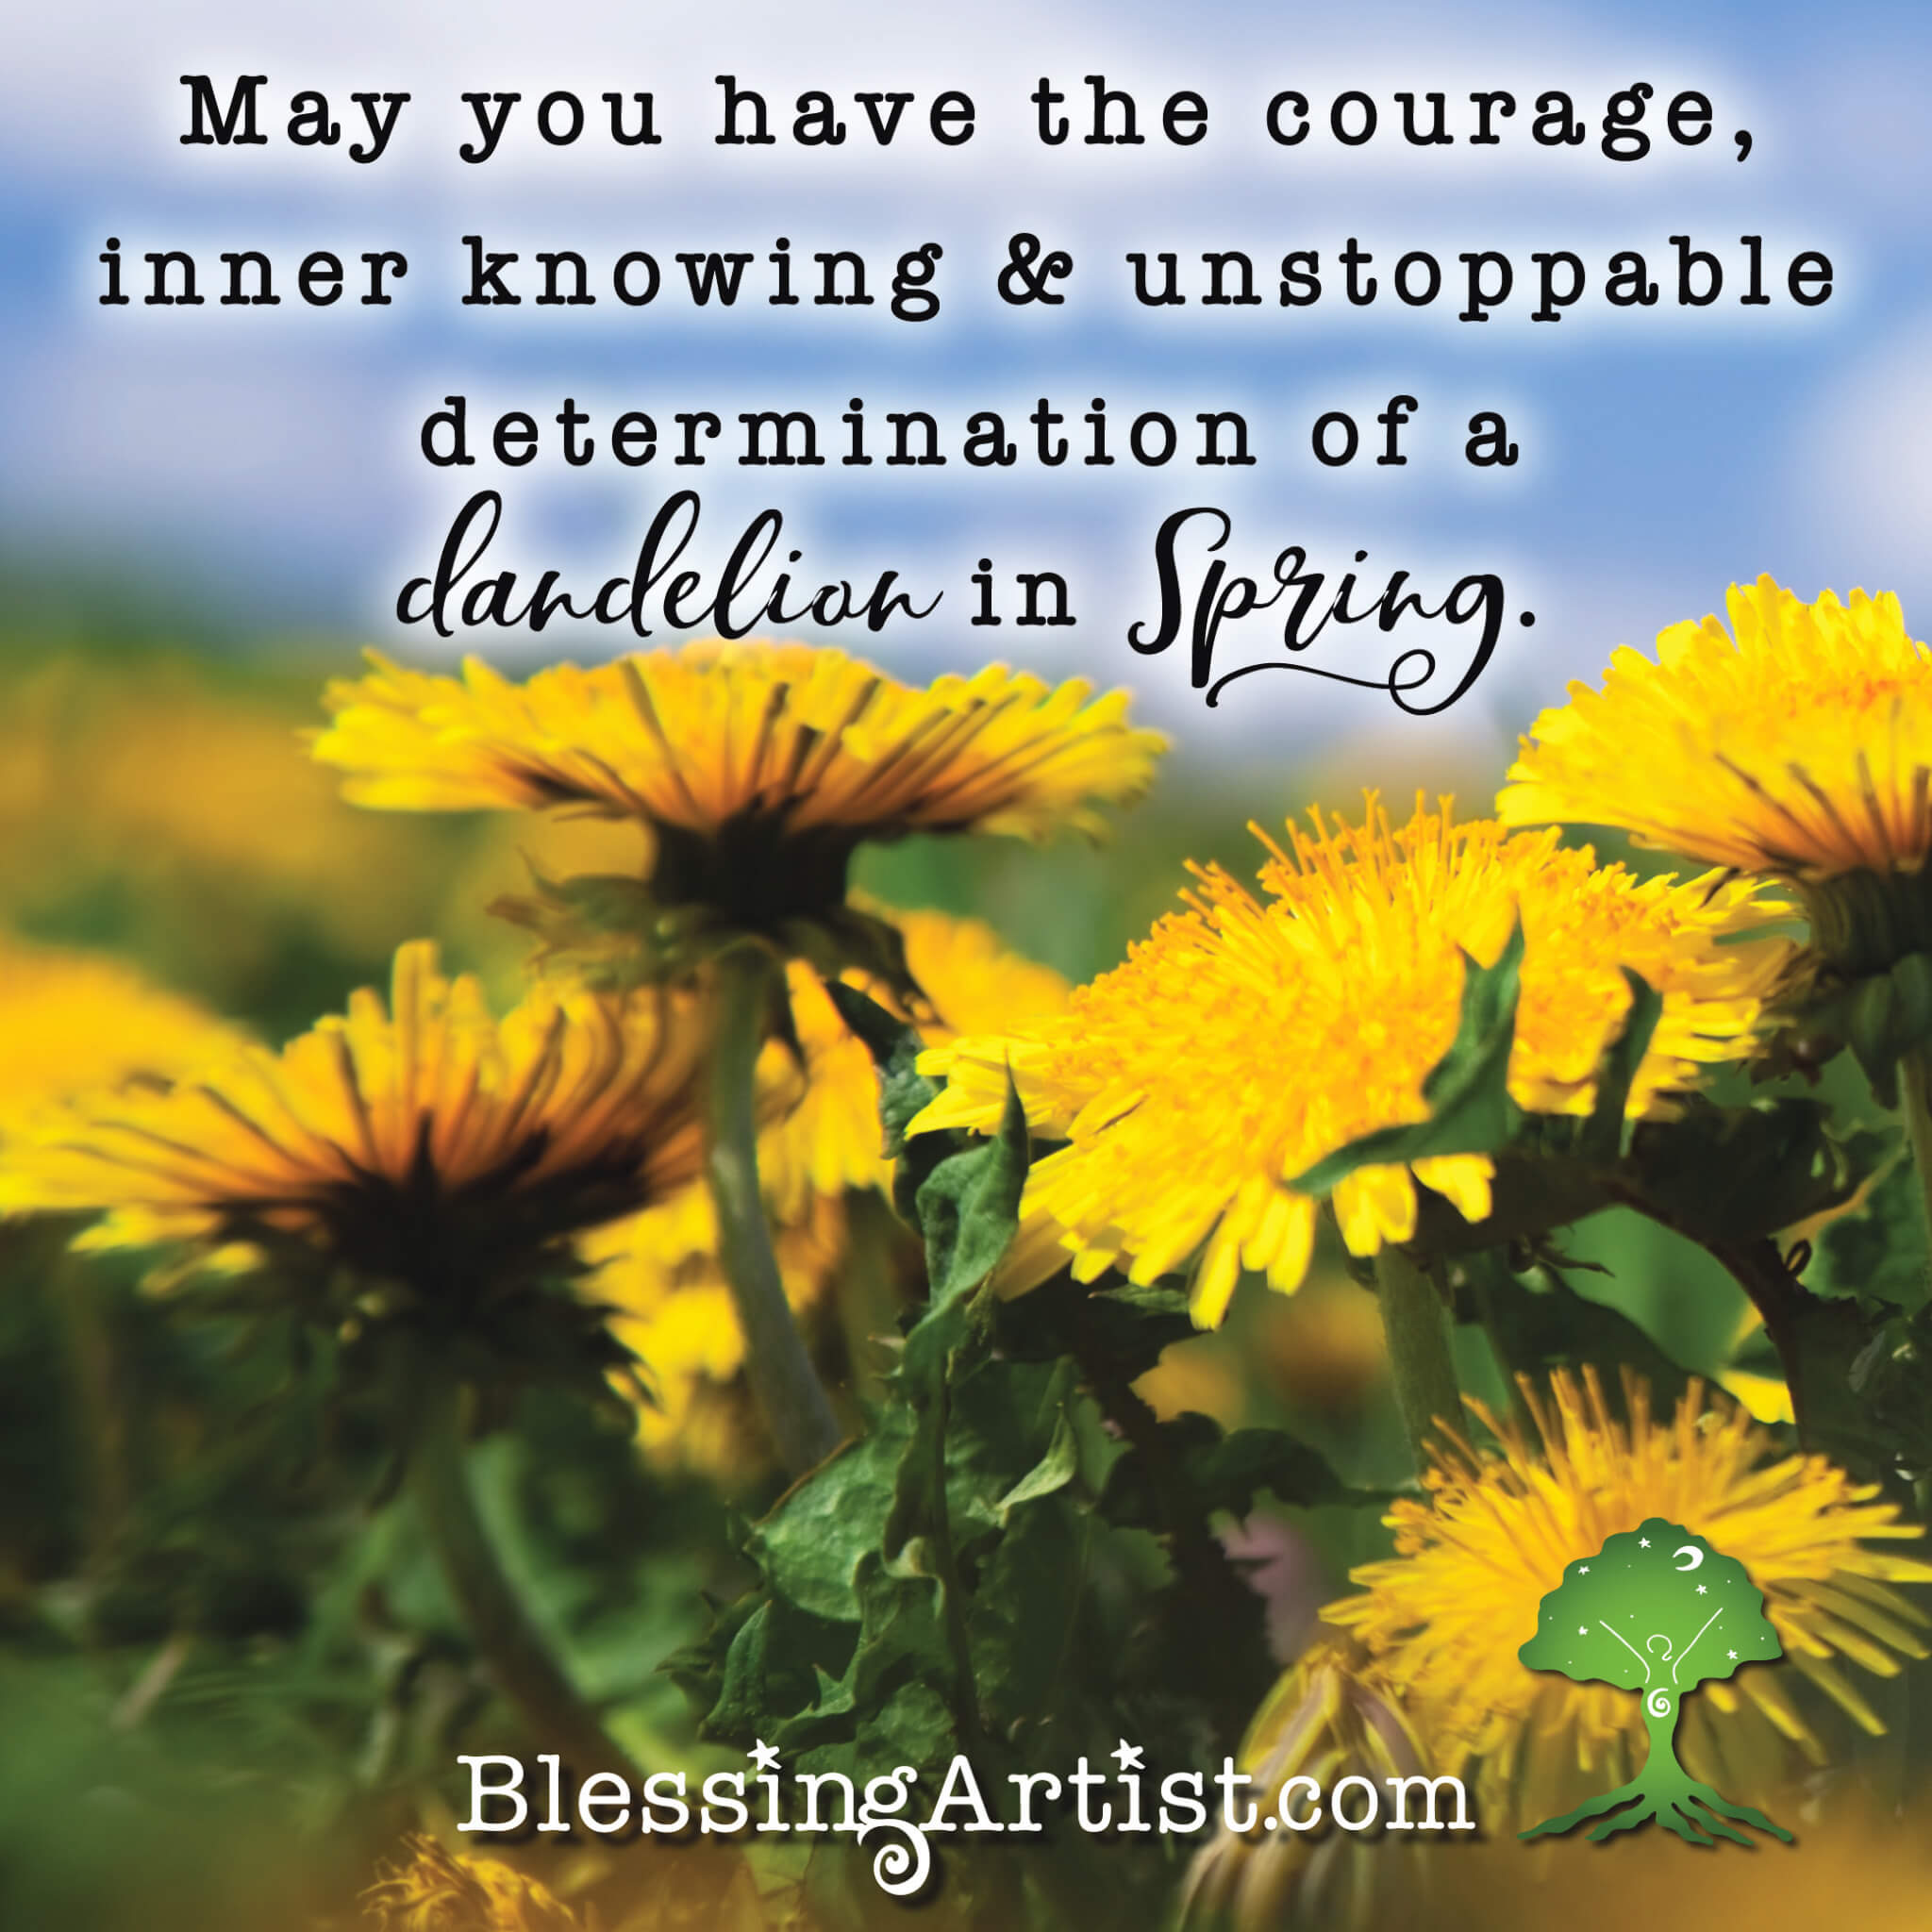 image of dandelions with words: May you have the courage, inner knowing & unstoppable determination of a dandelion in spring